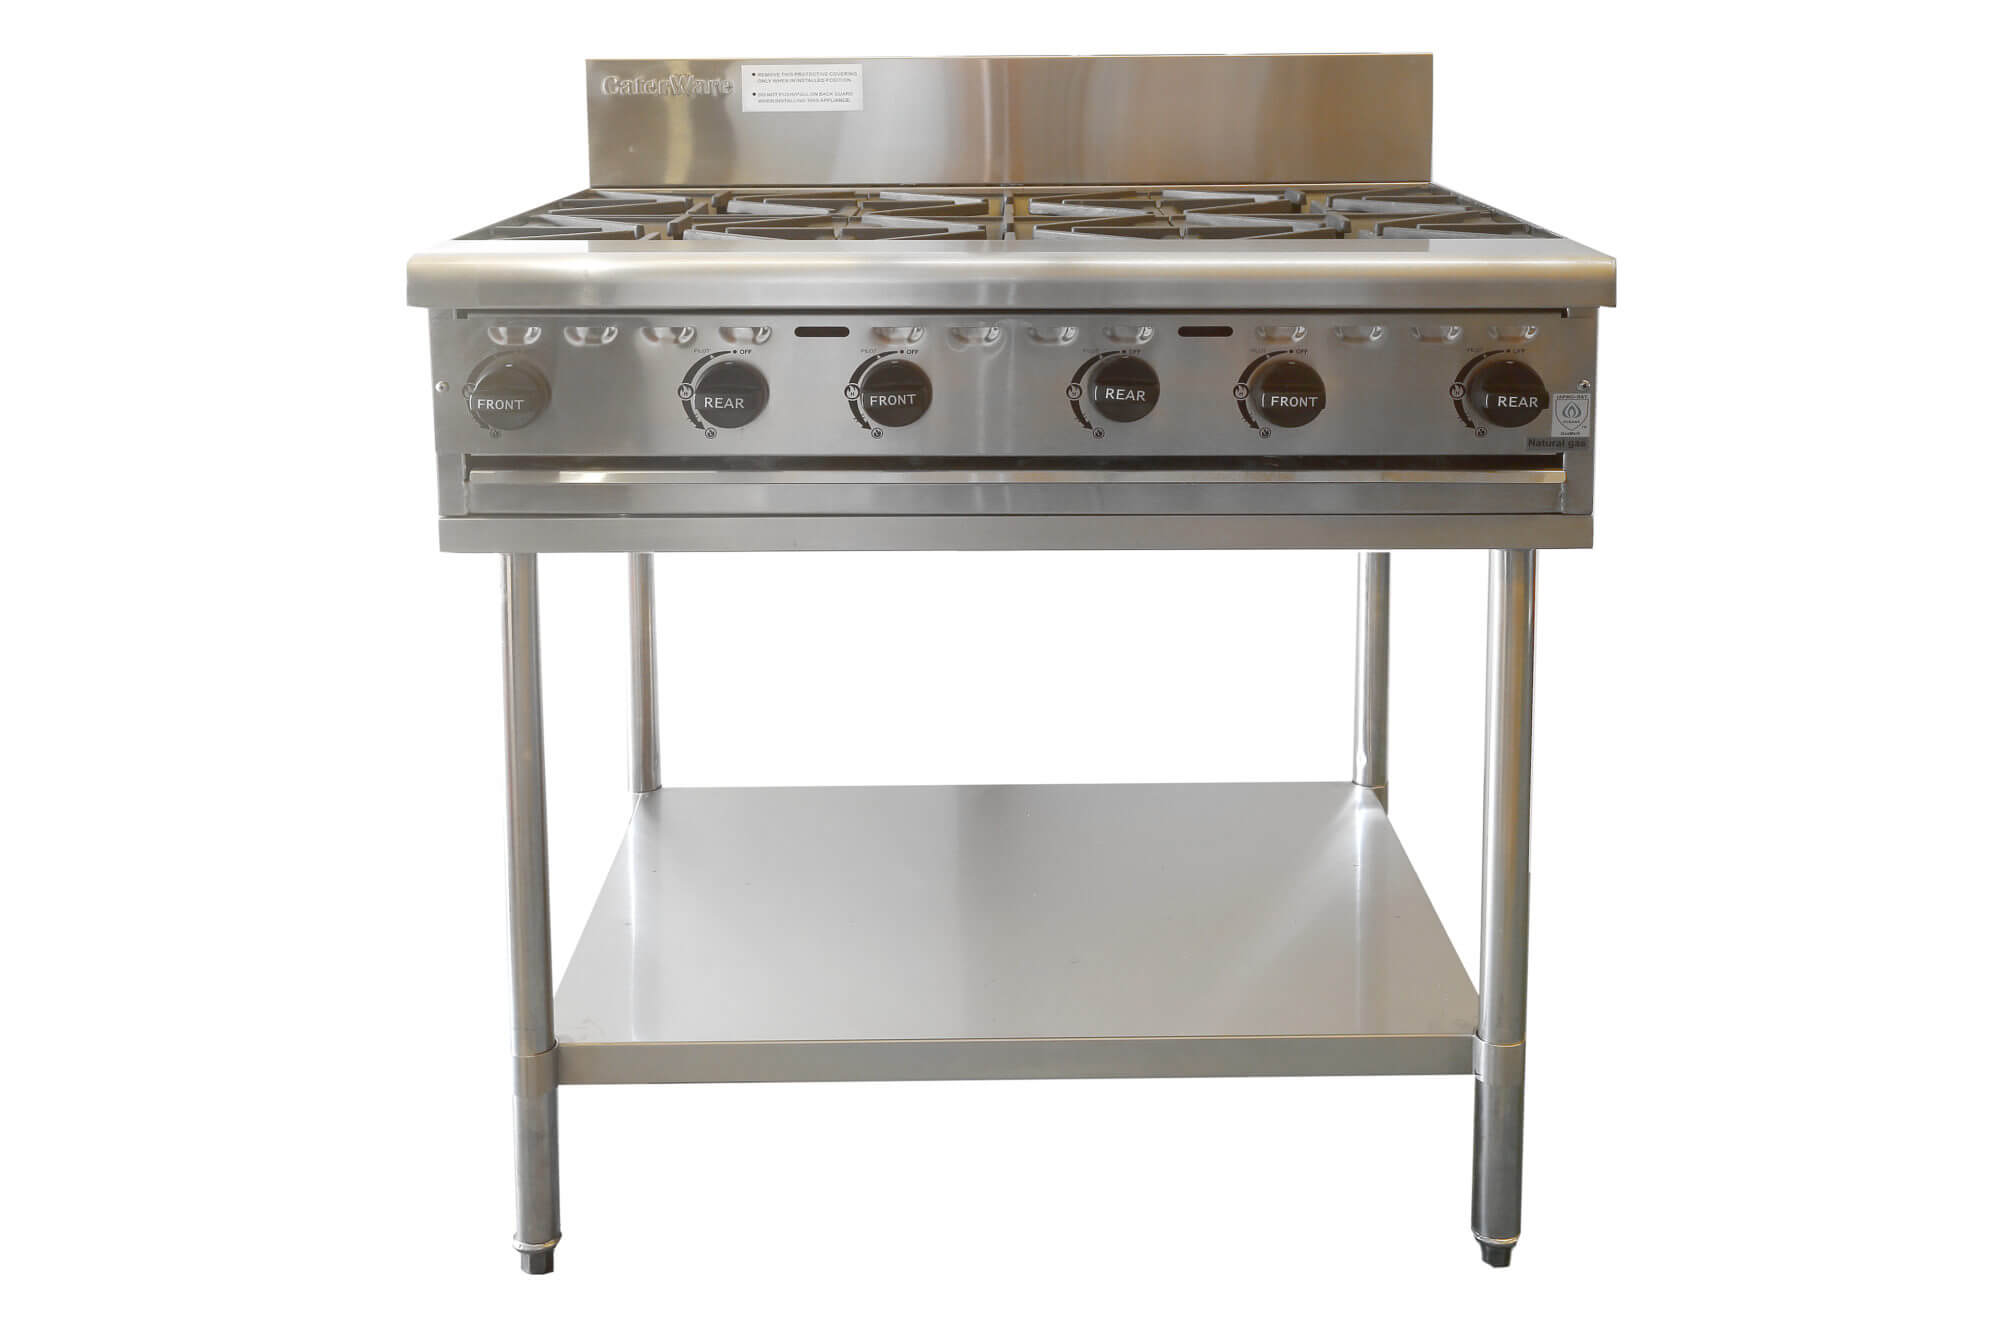 Steel Stand Designs Inc : Caterware six burner stainless steel gas cooktop inc stand